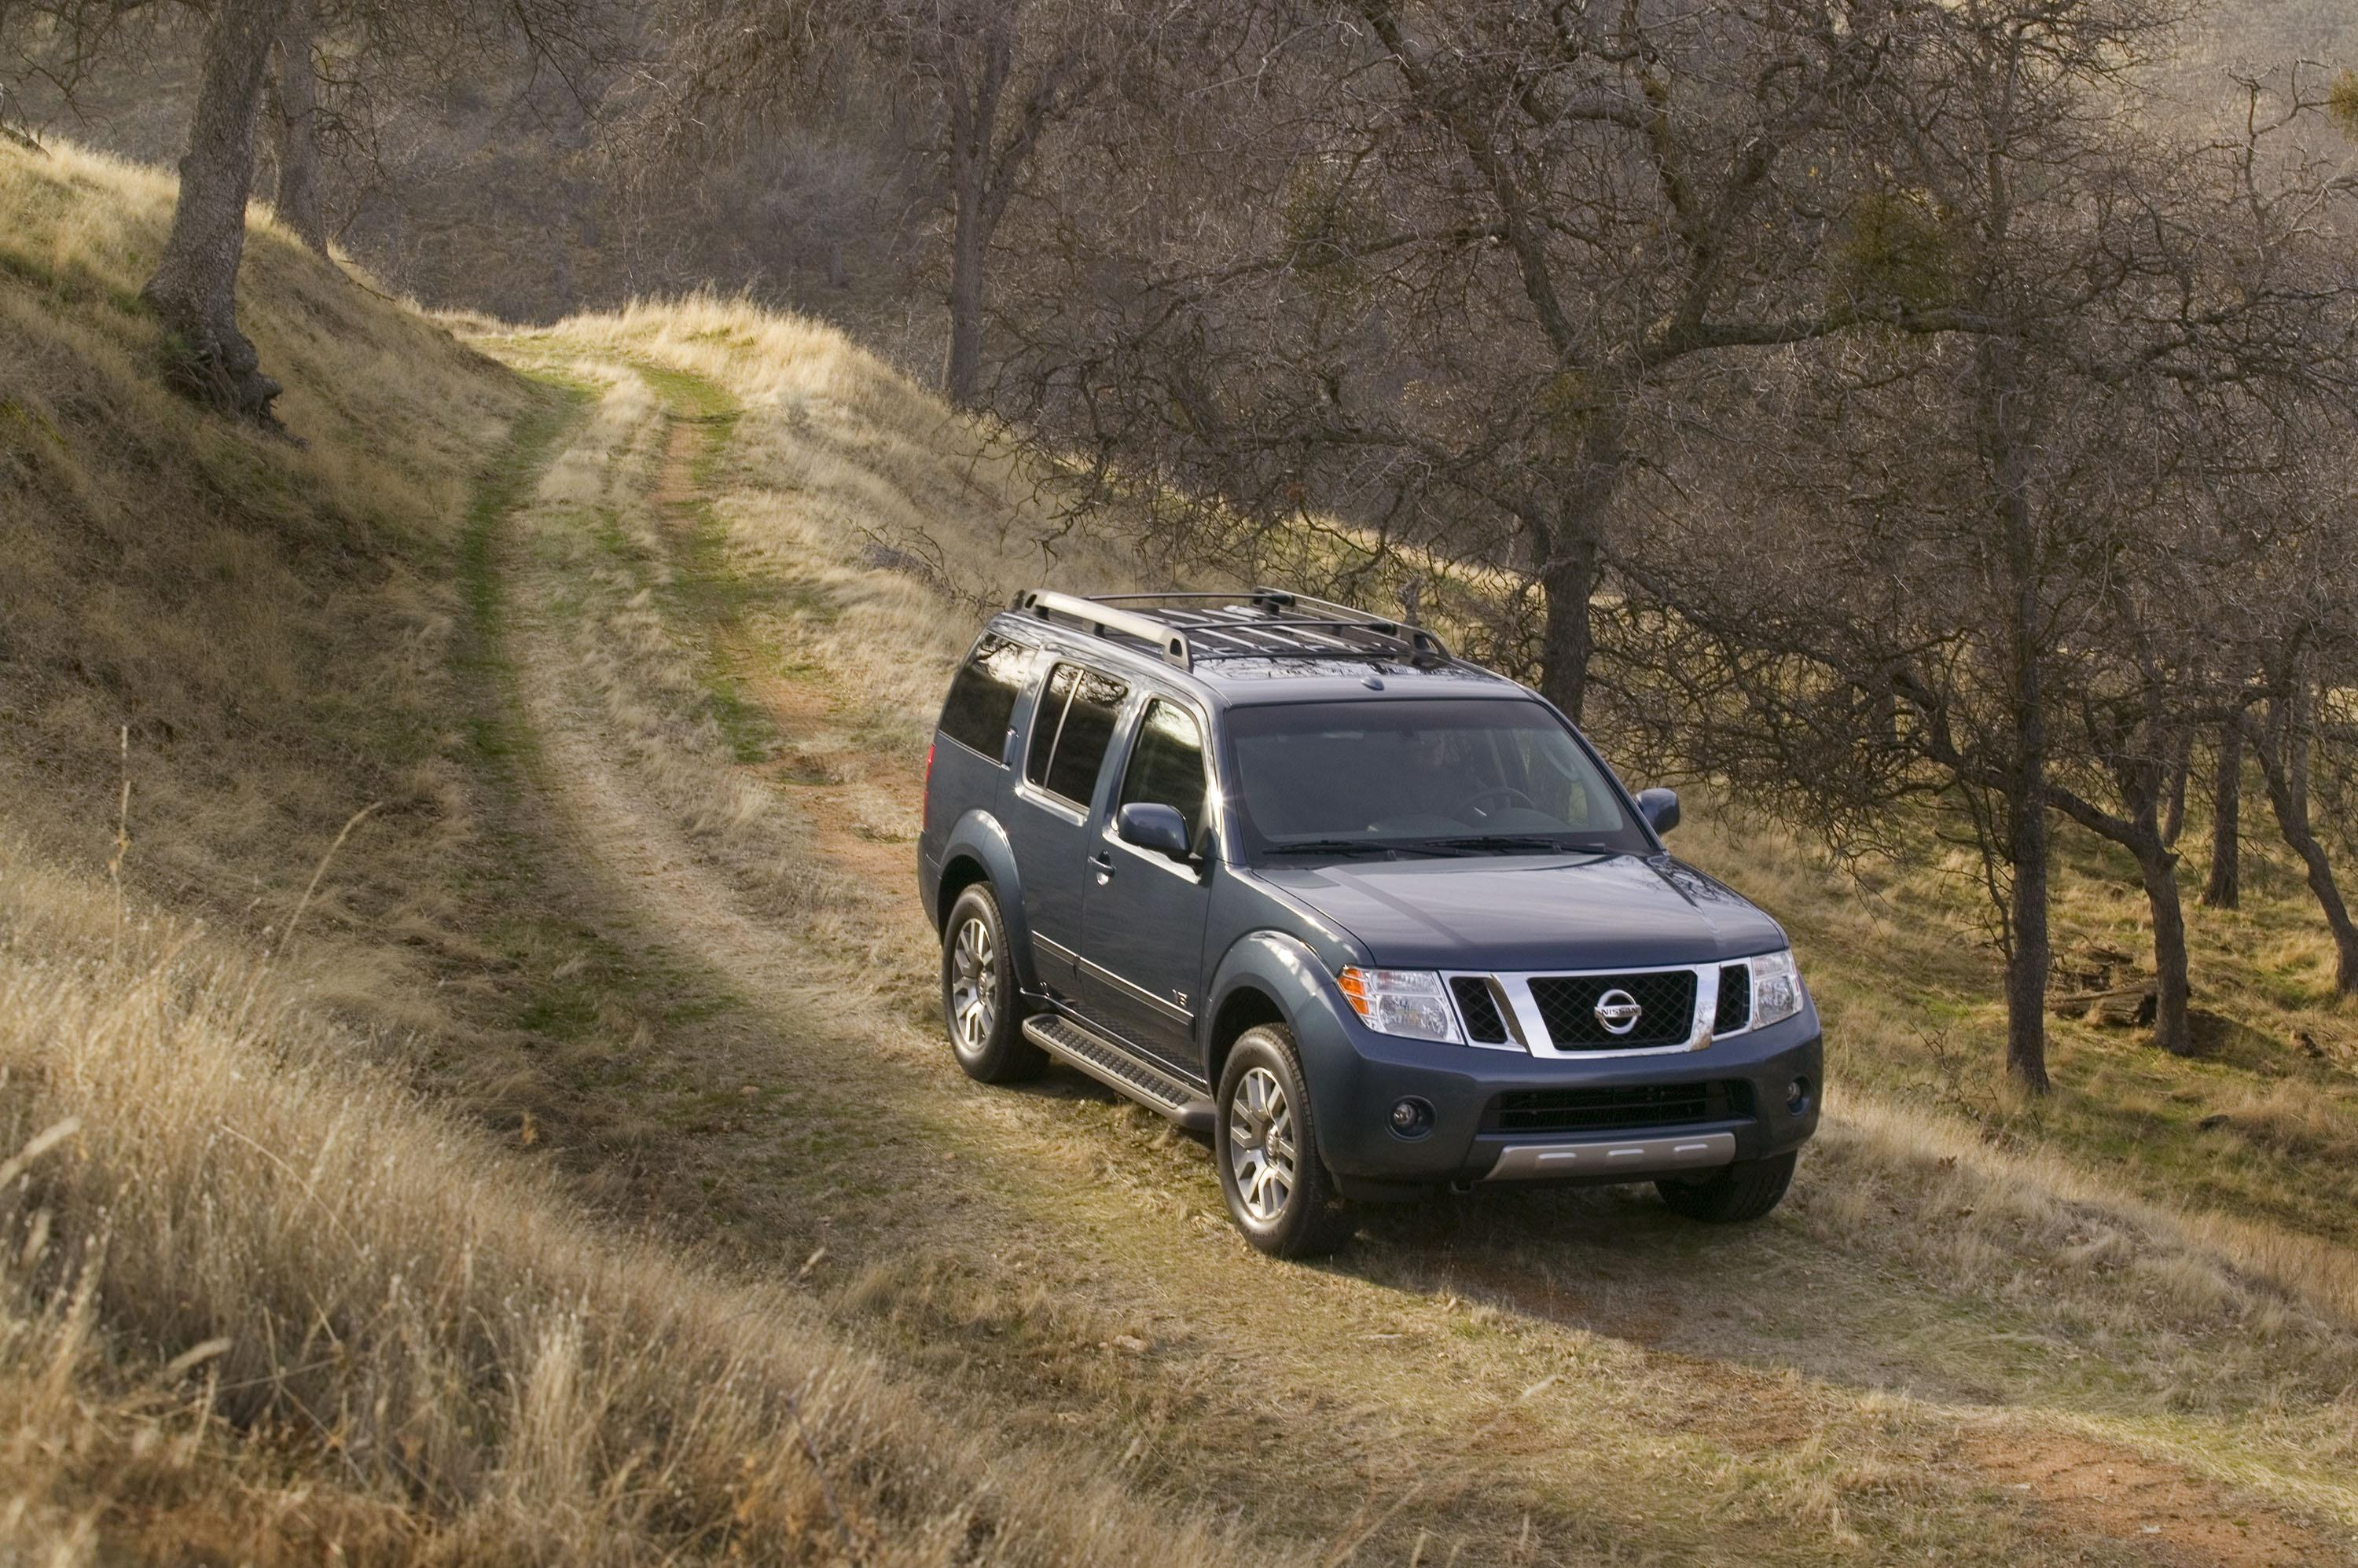 2000 Nissan Pathfinder Off Road Review ✓ Nissan Recomended Car